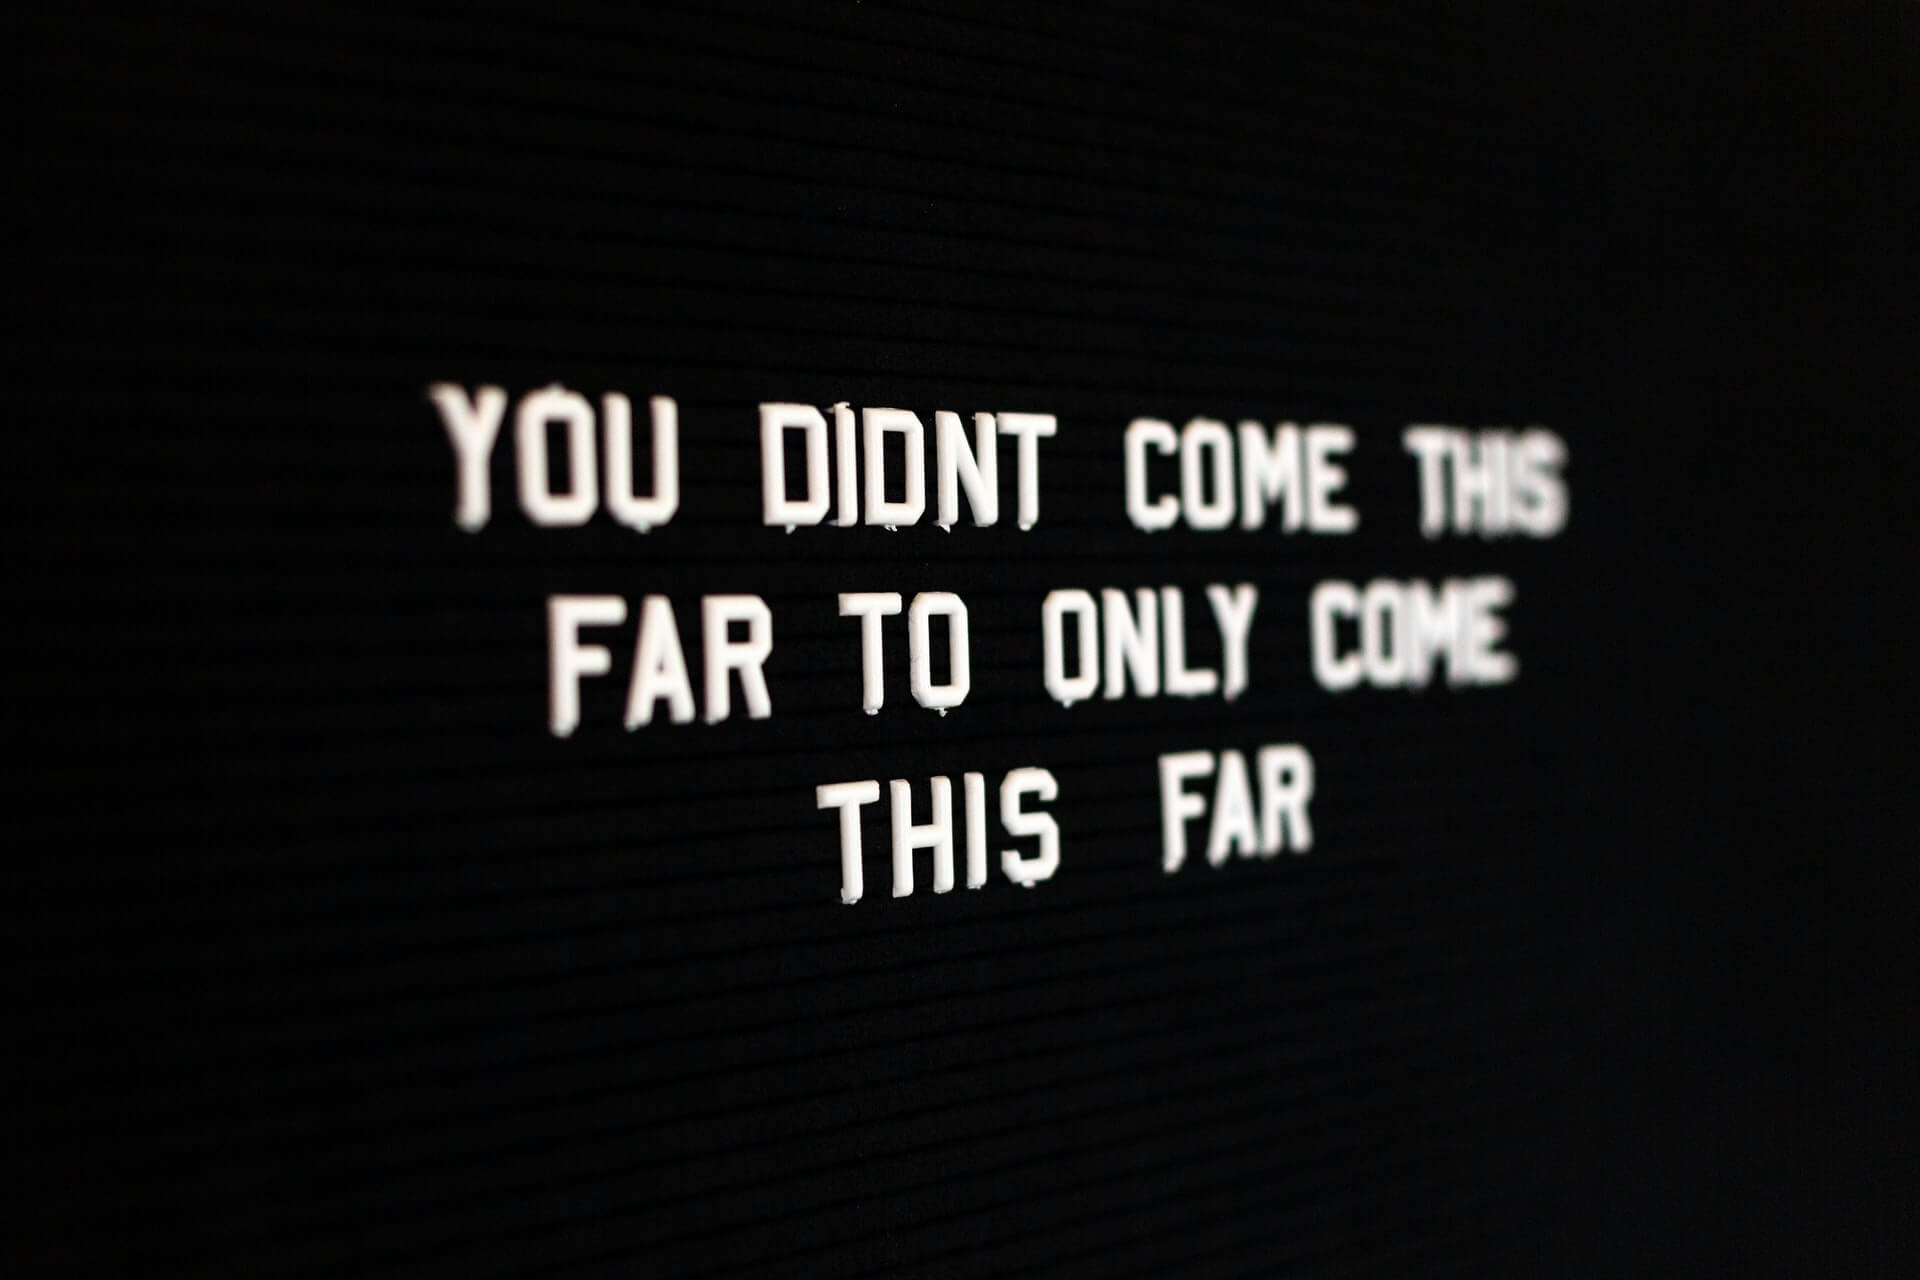 Quote: You didn't come this far to only come this far